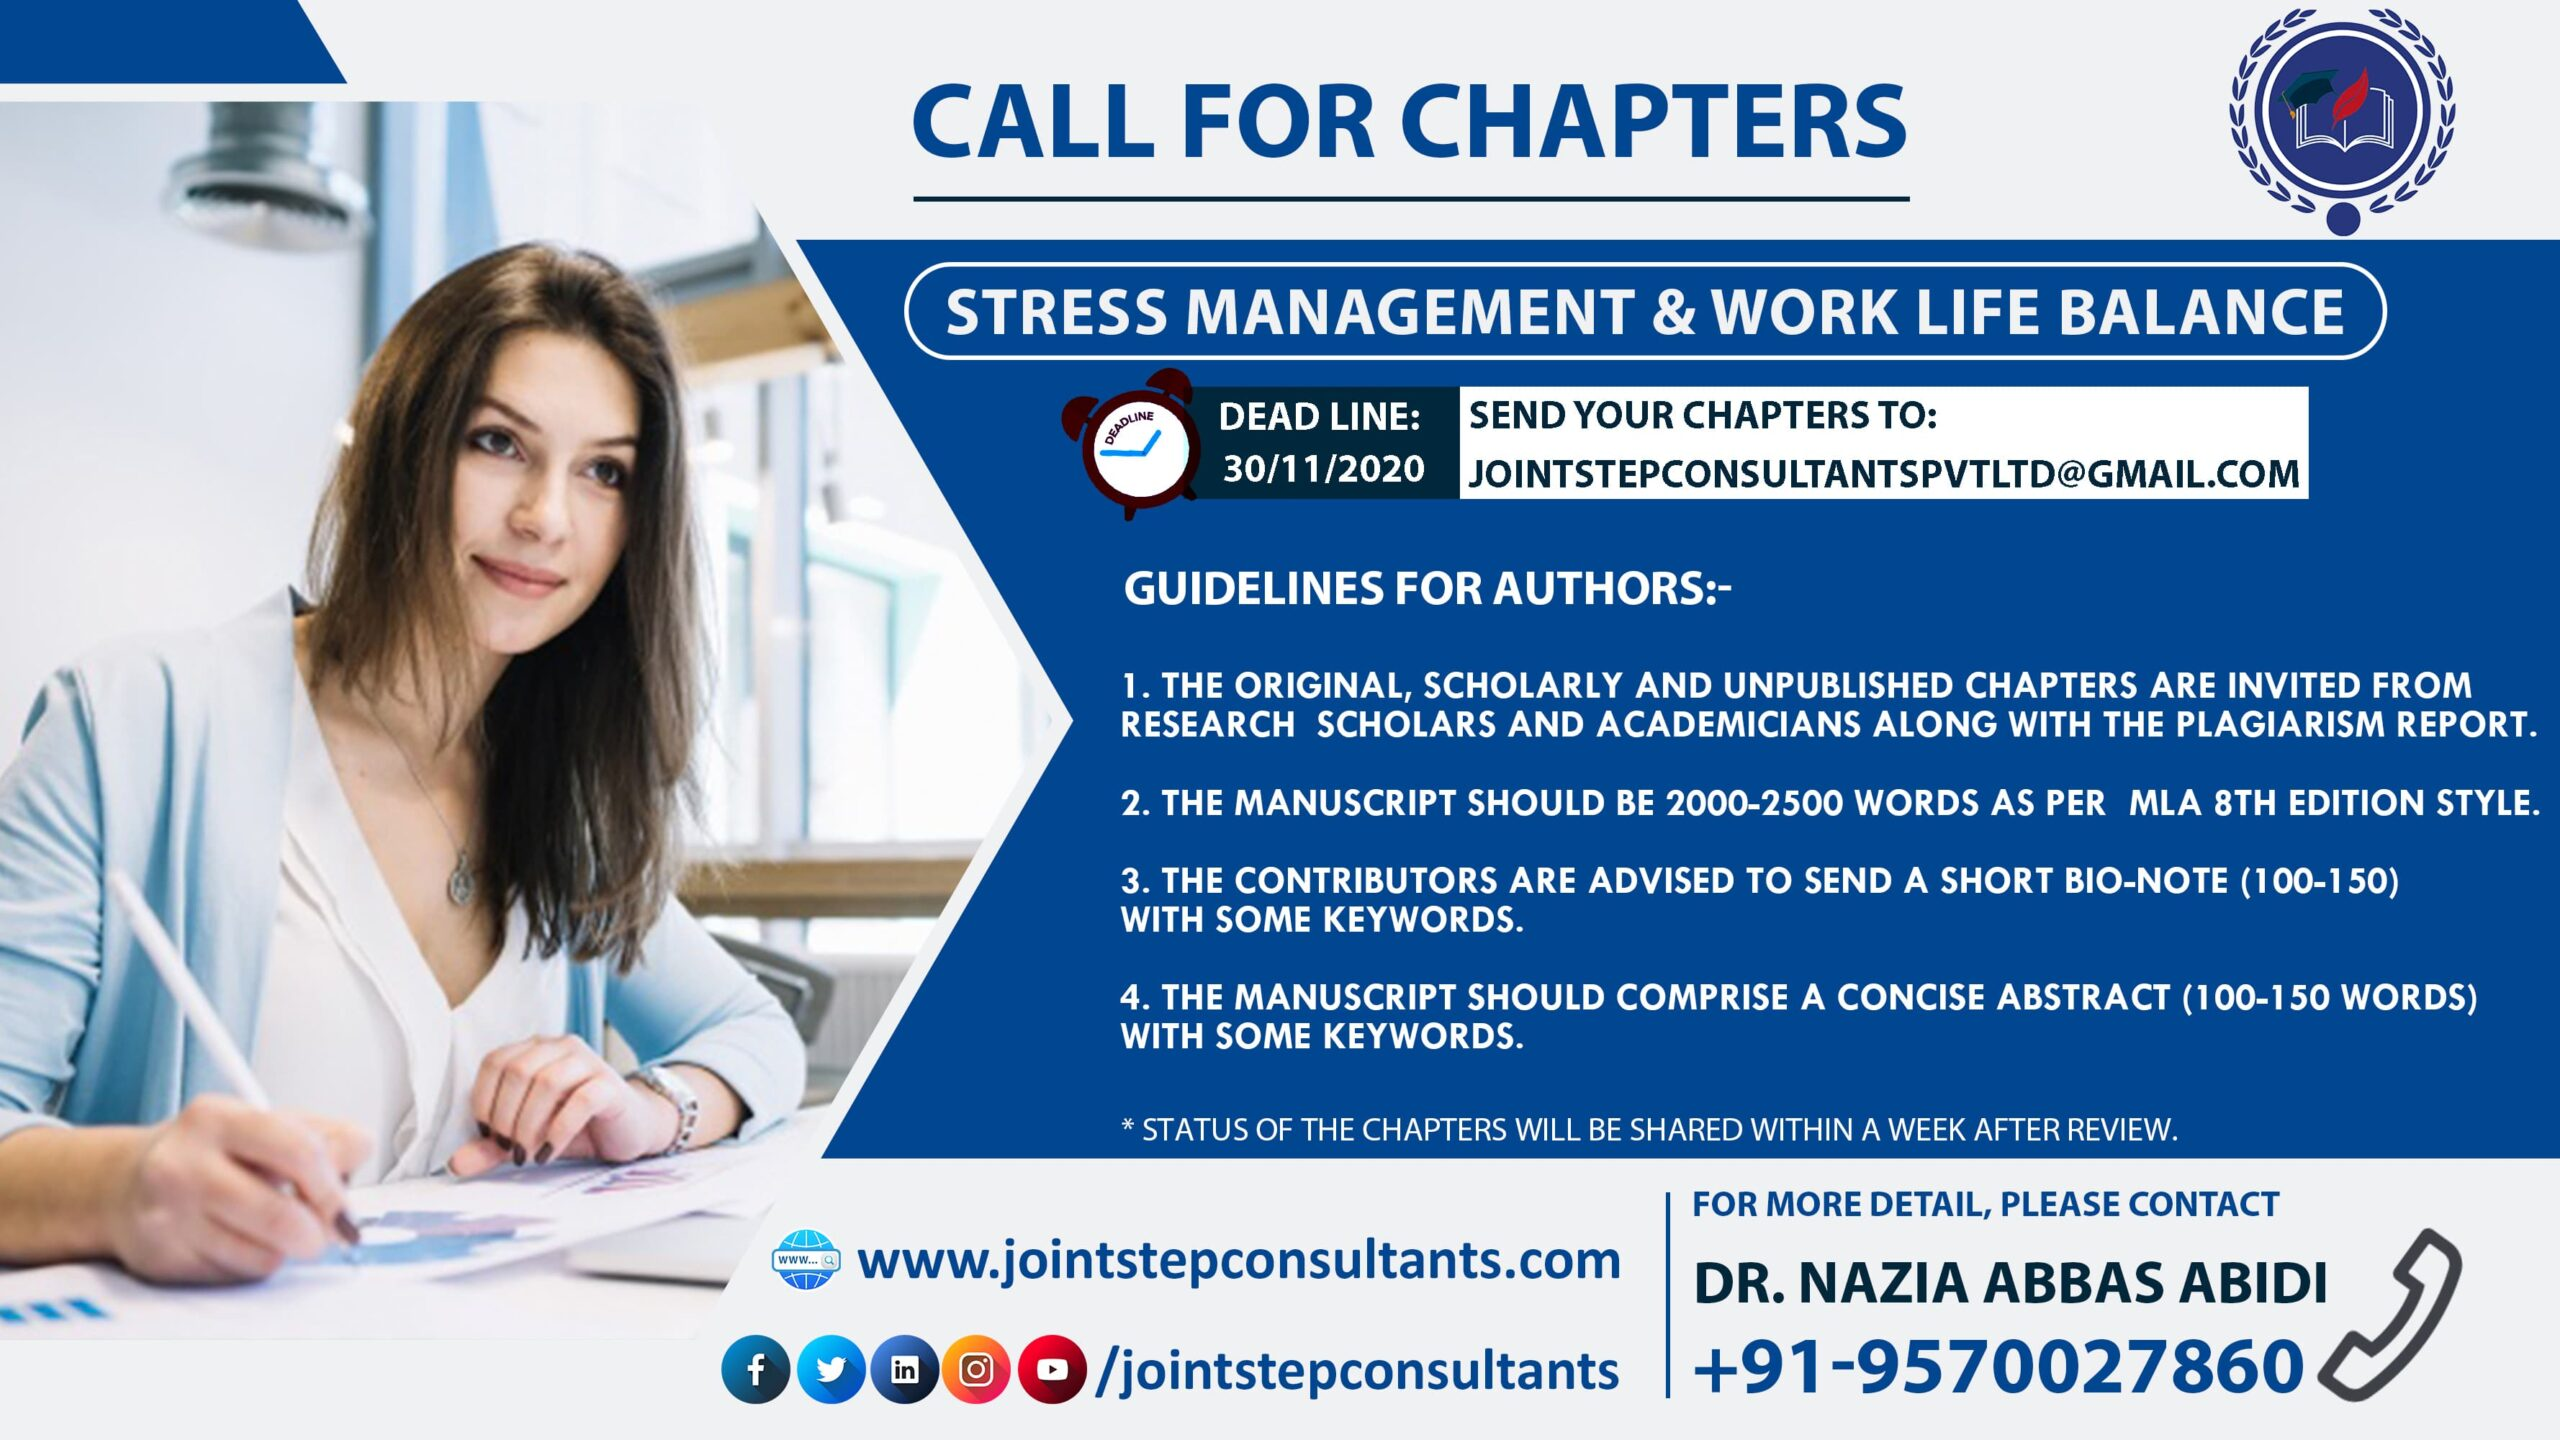 Call for Chapters Stress Management and Work Life Balance